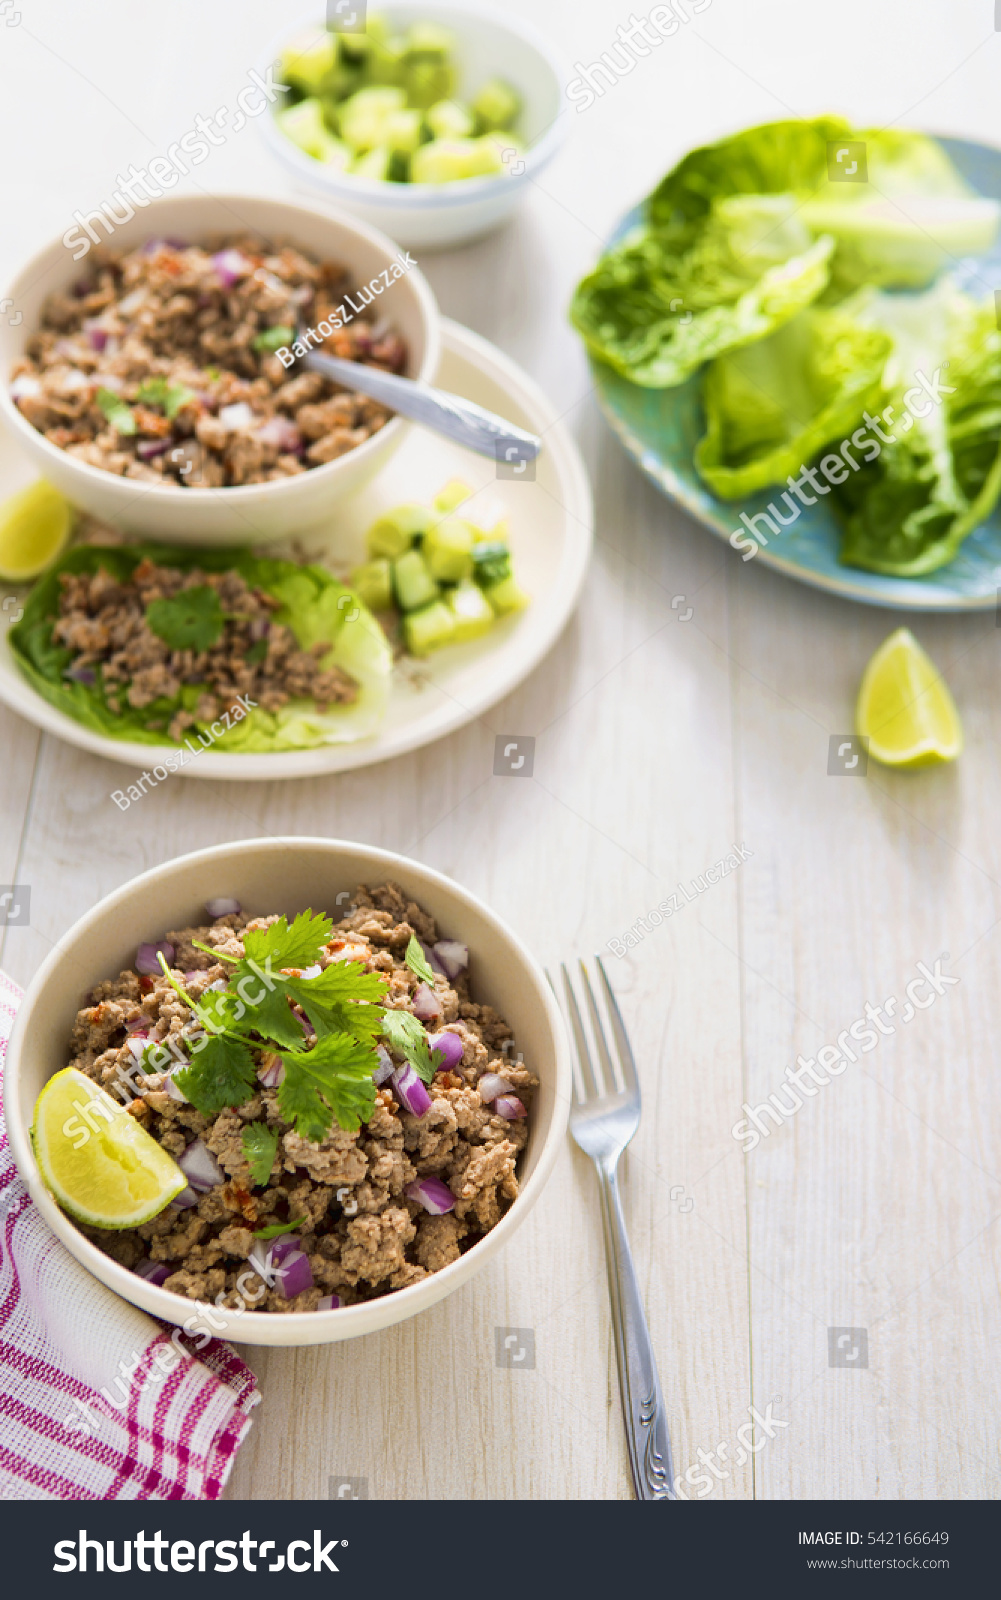 Pork Larb Lettuce Wraps Stock Photo 542166649 - Shutterstock